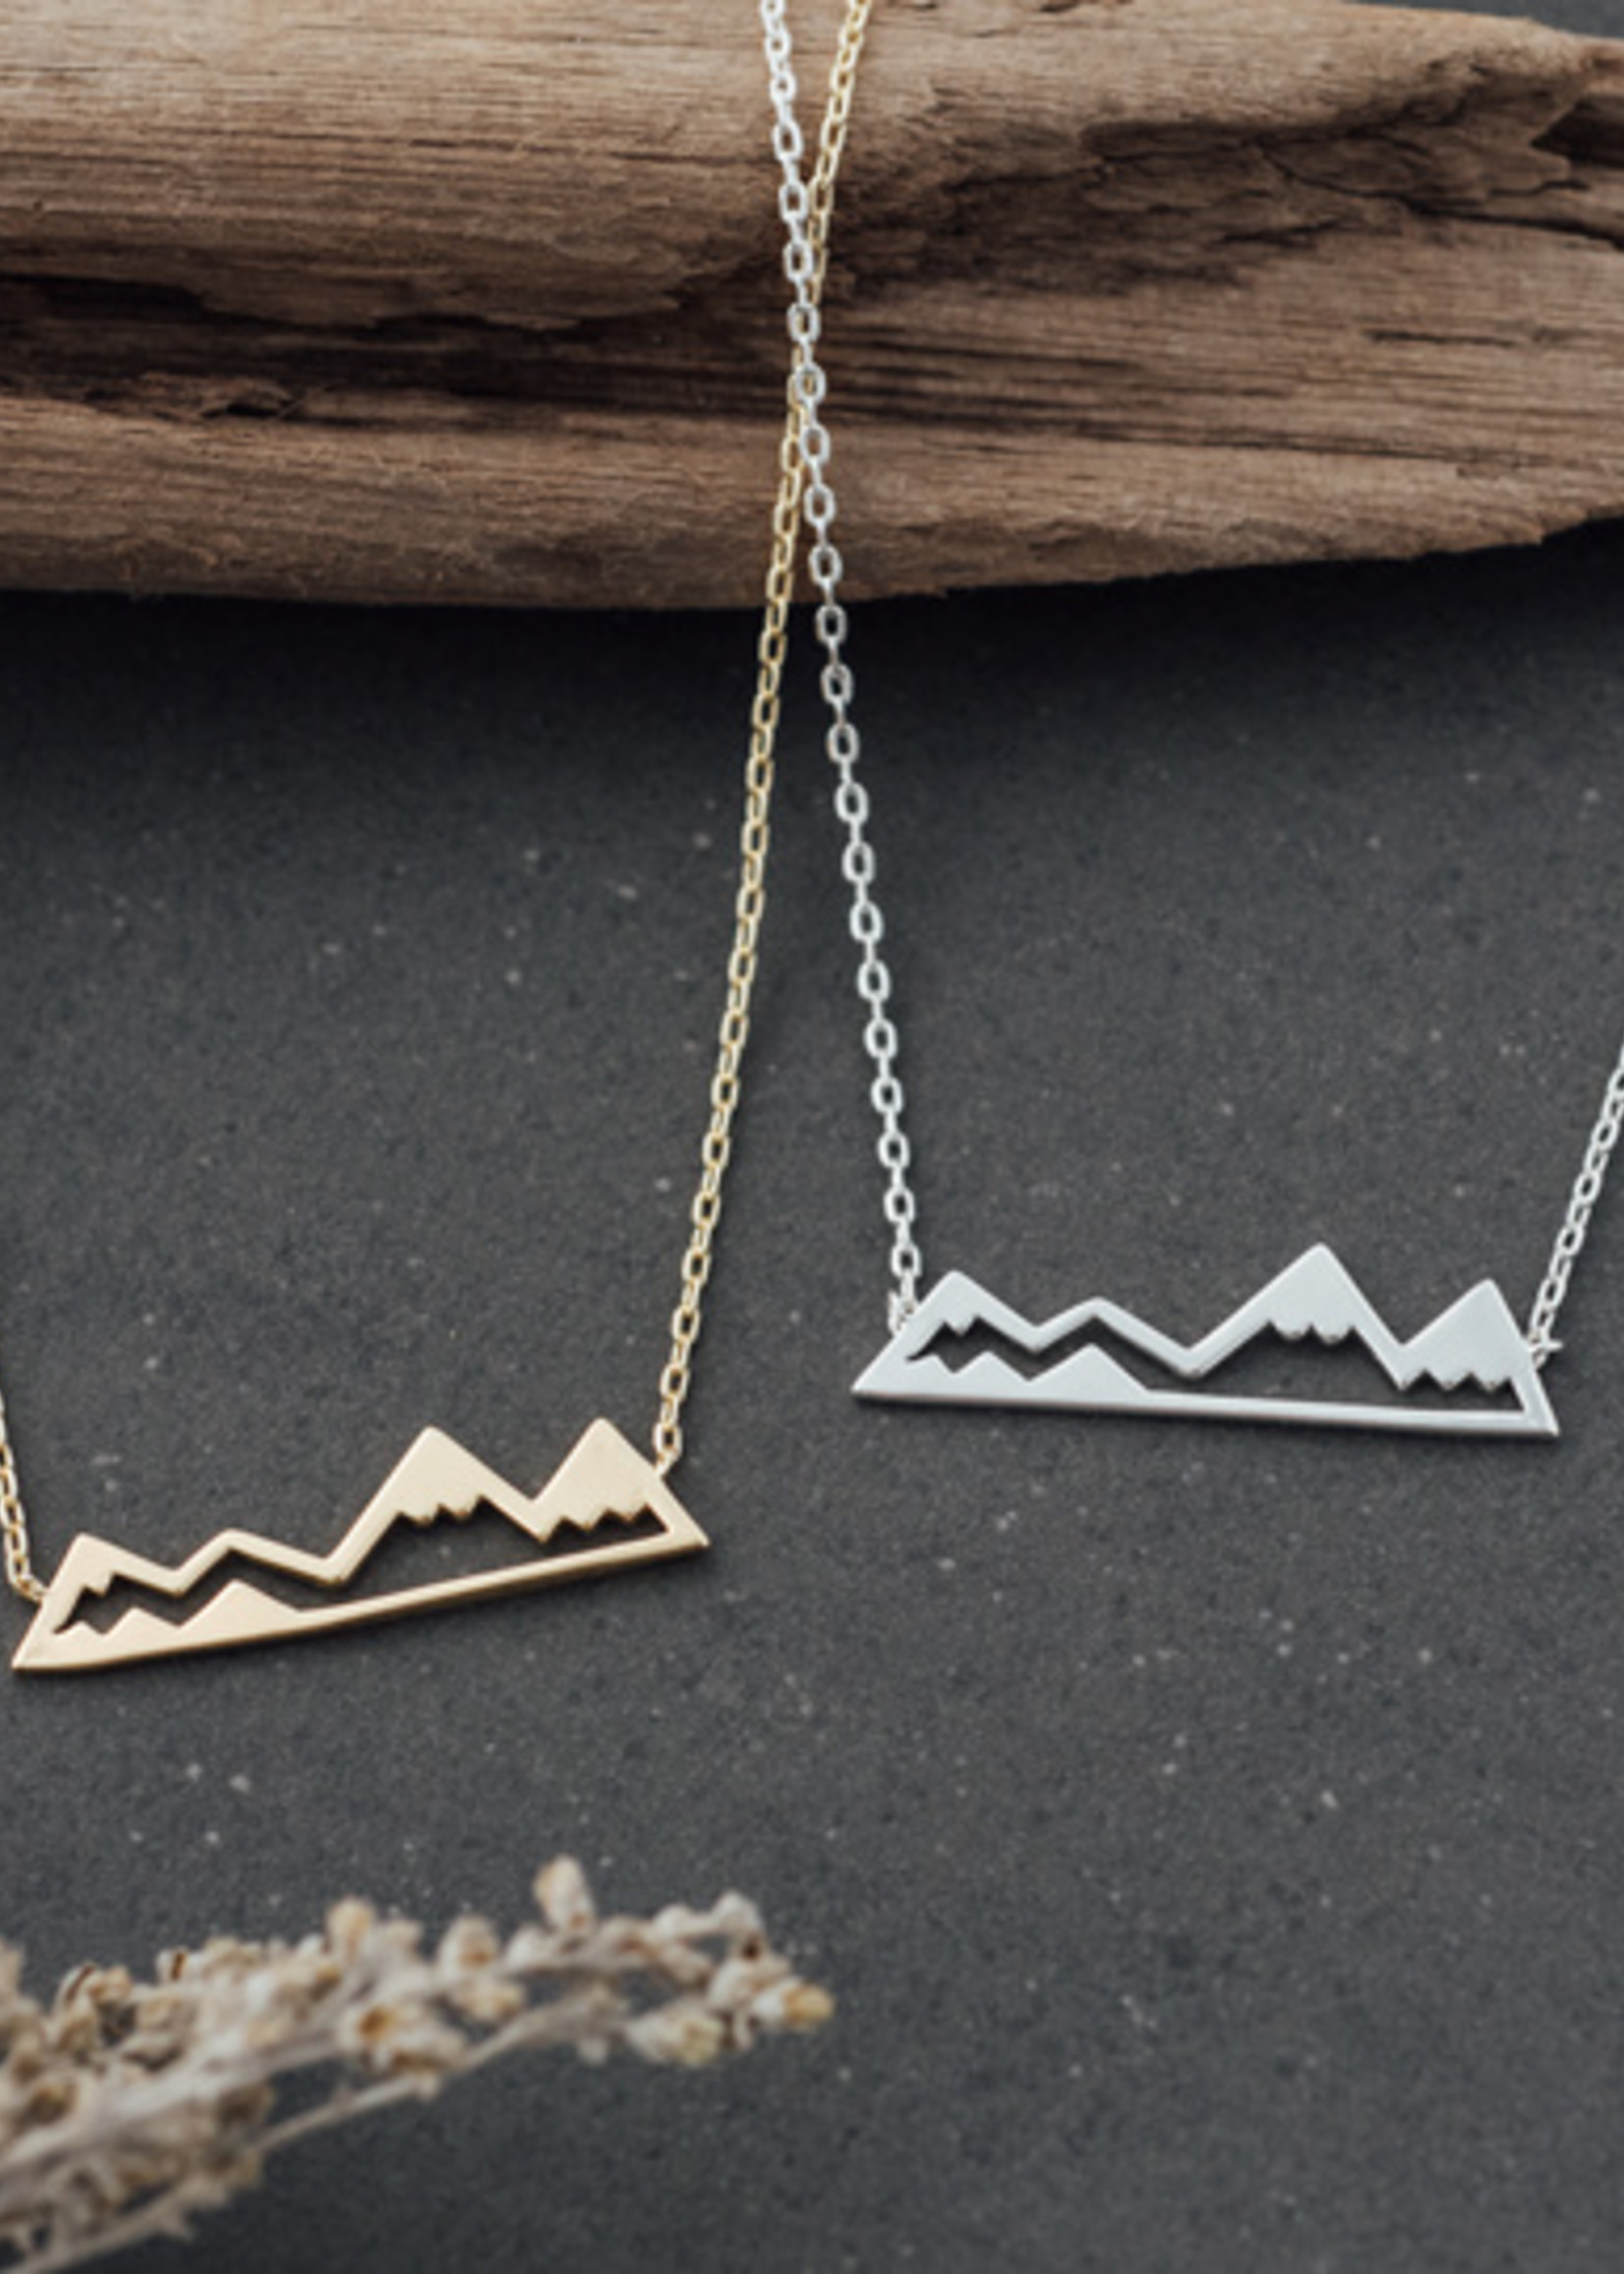 Glee Jewelry Olympic Mountain Necklace /Silver